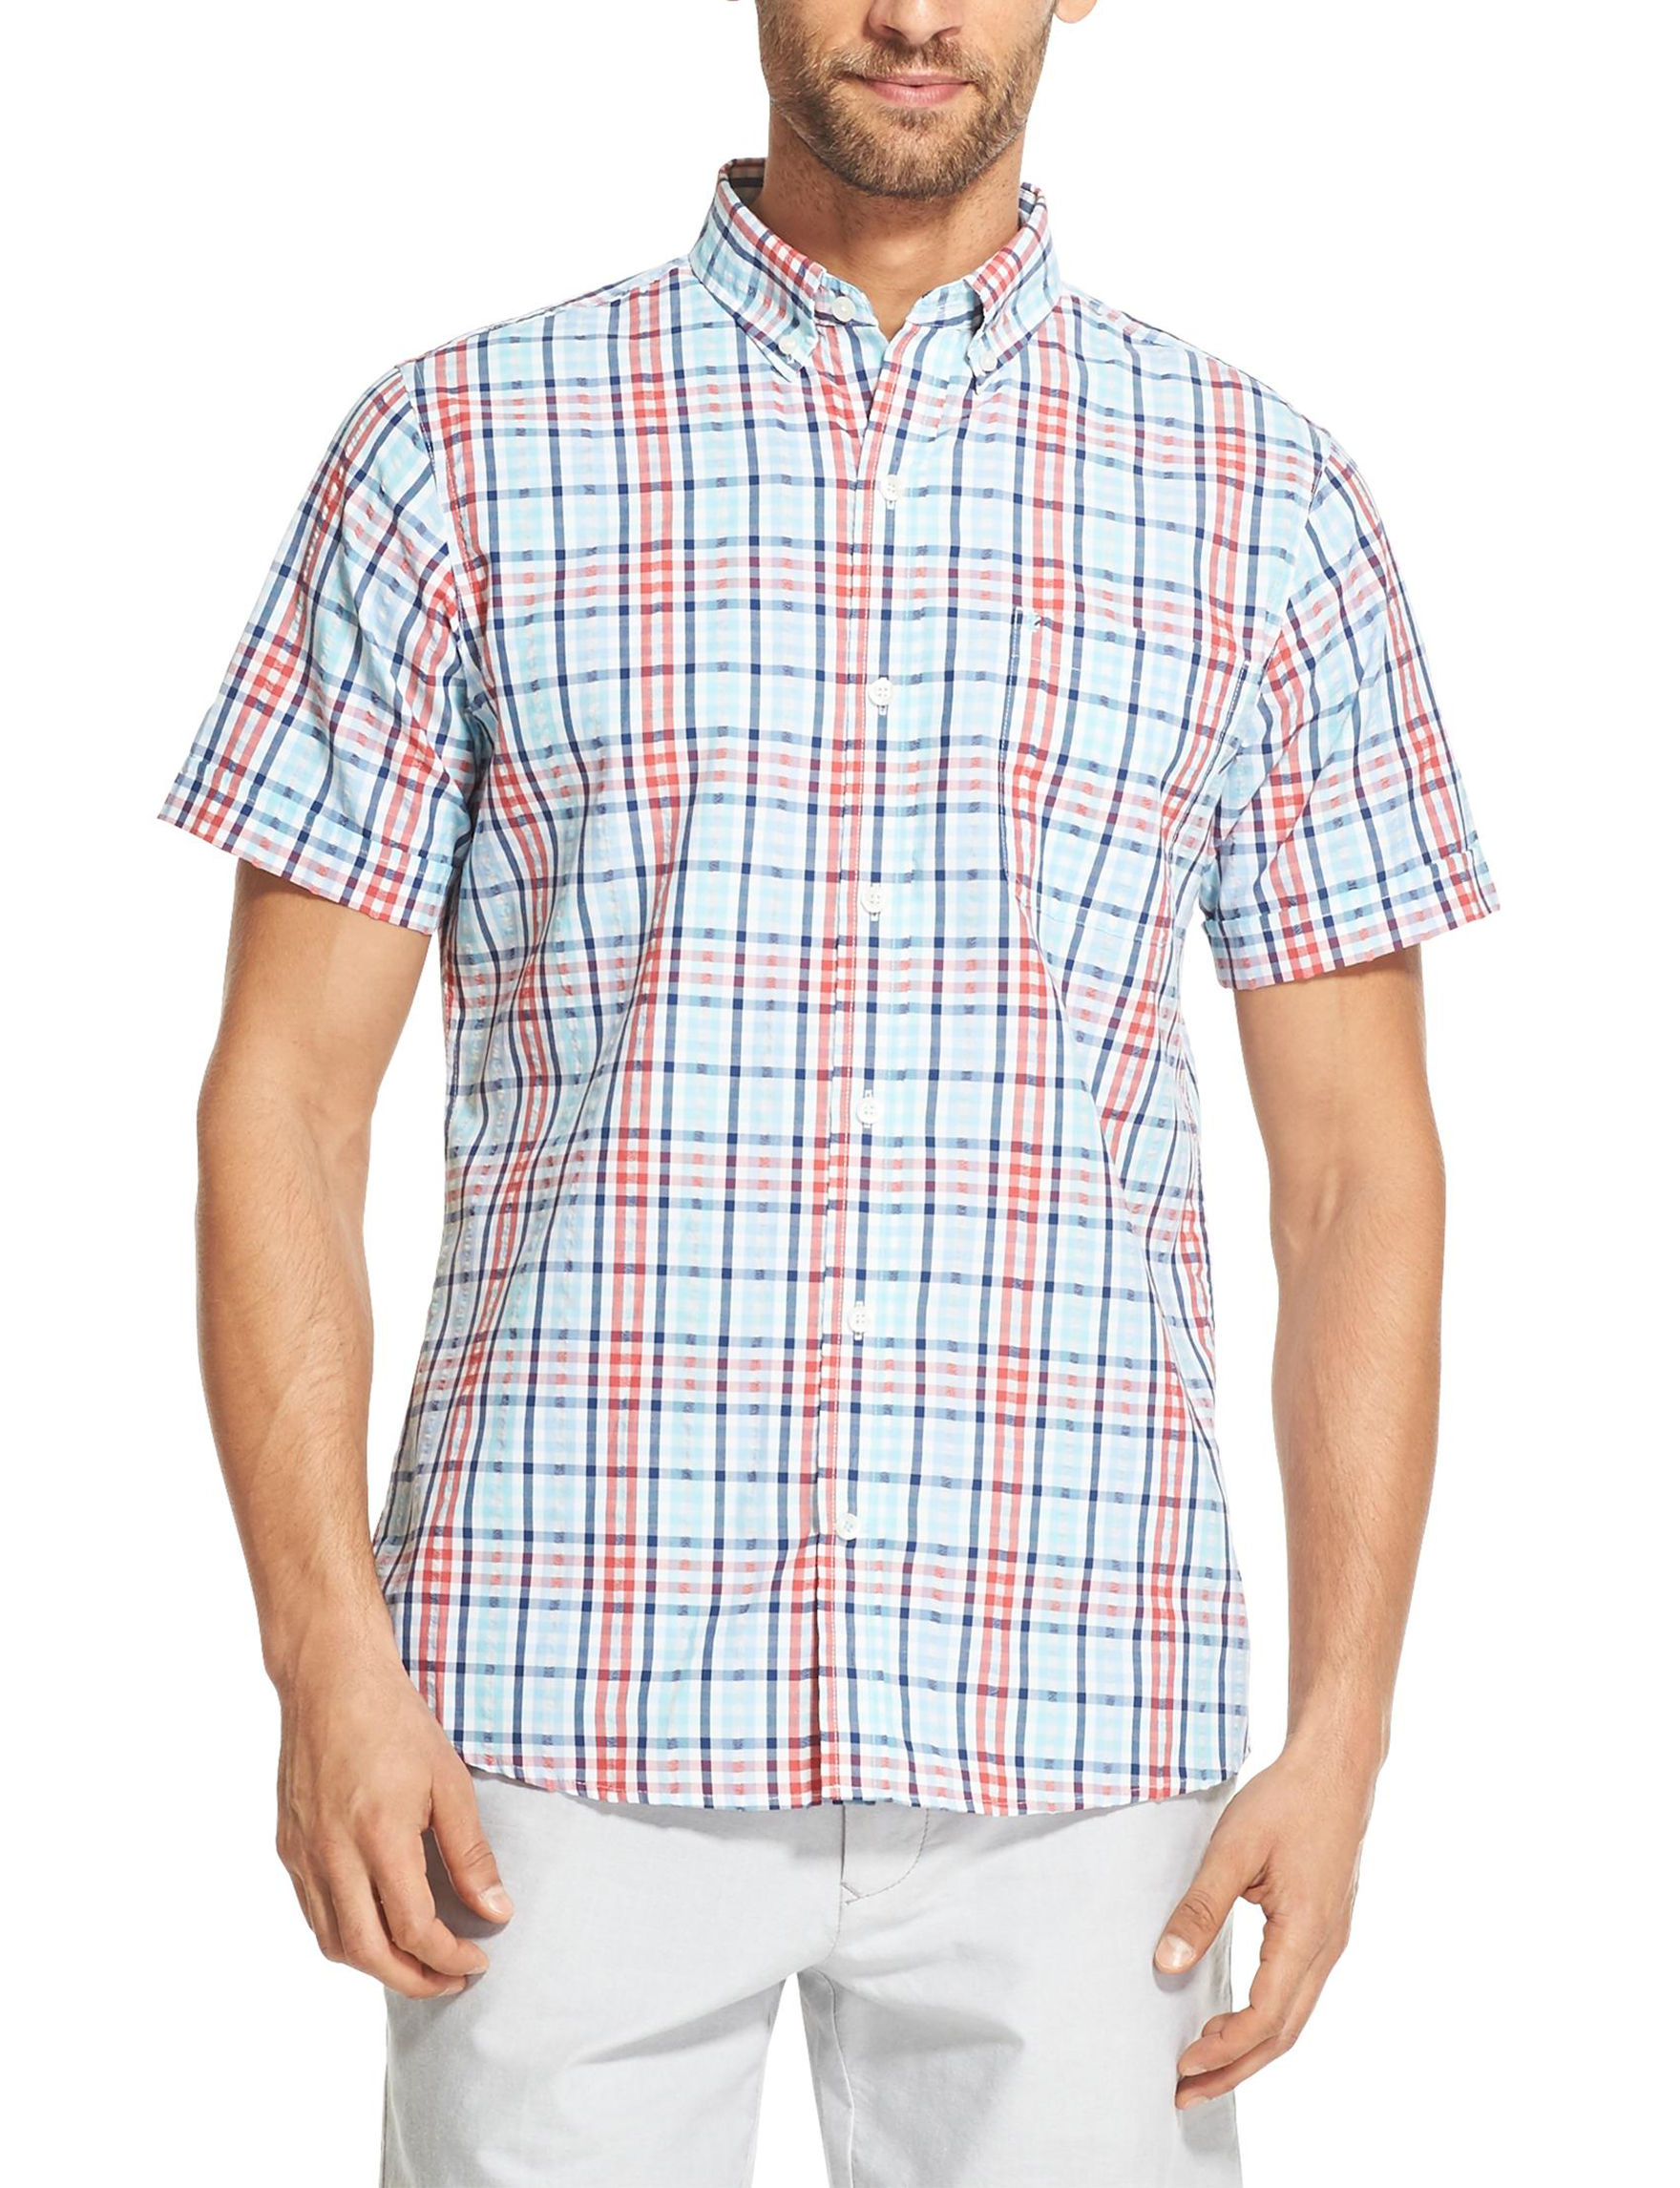 Izod Red Plaid Casual Button Down Shirts